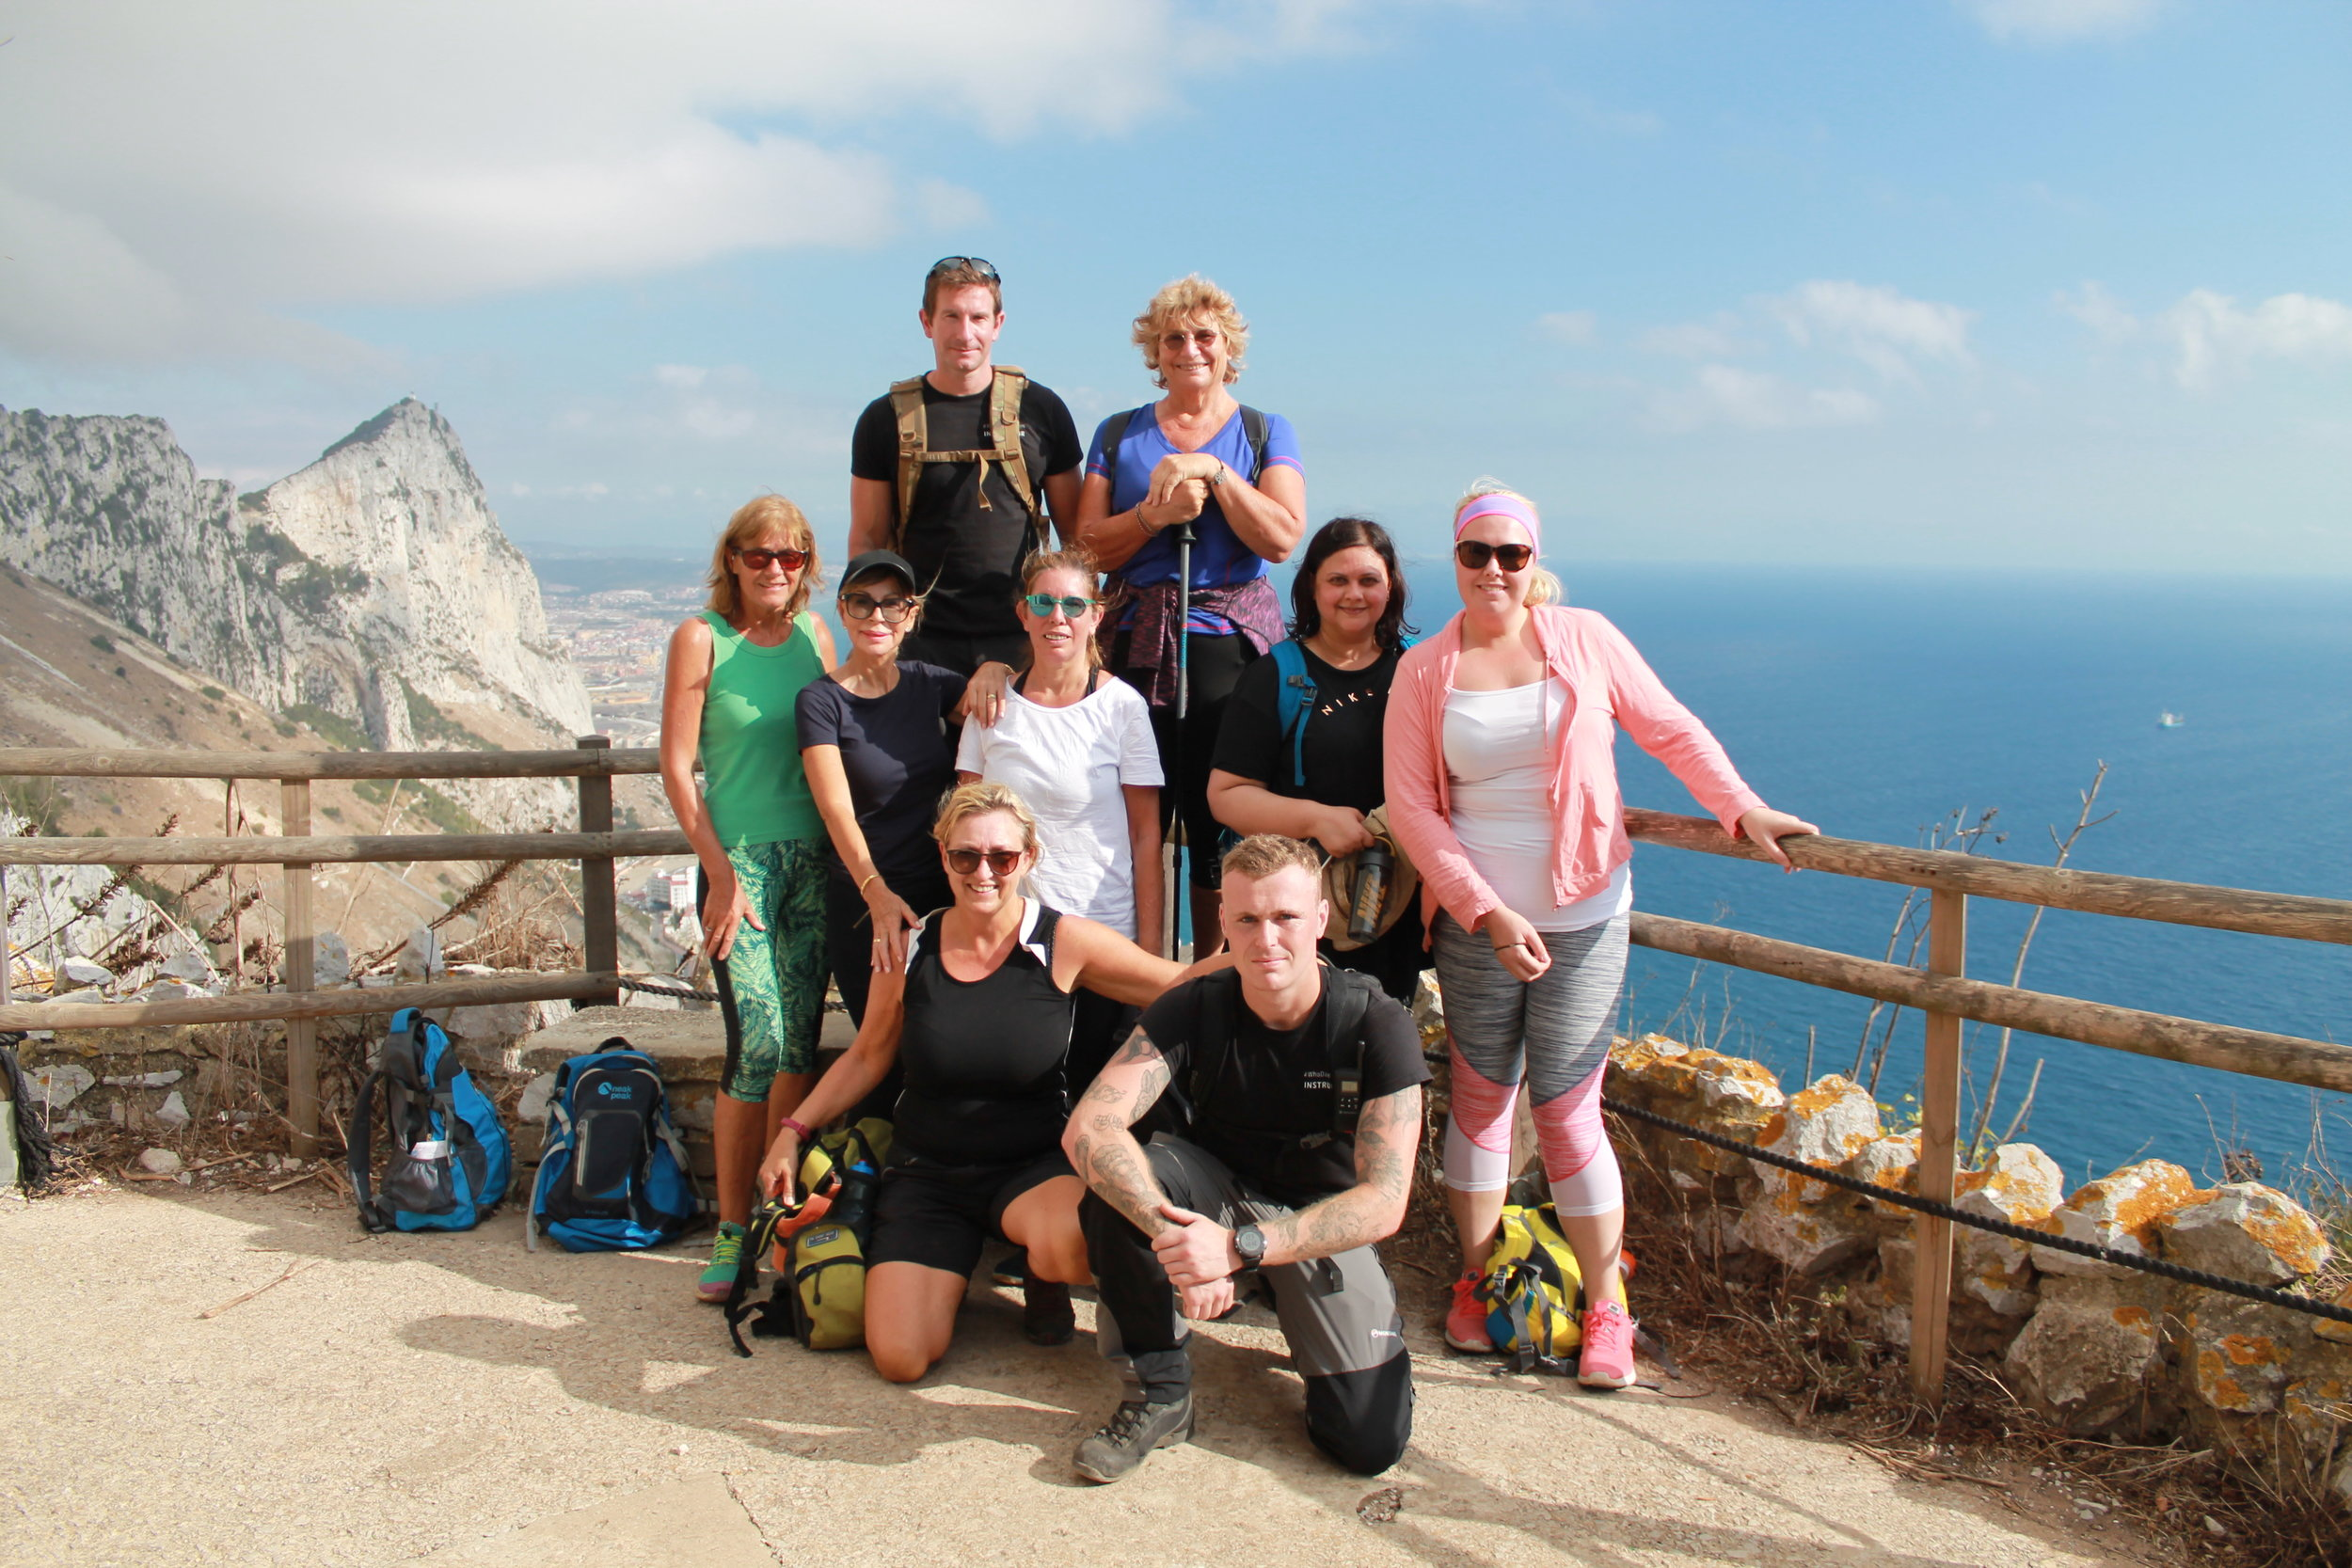 Gibraltar Mediterranean Steps - Fun and fitness combined for our retreat